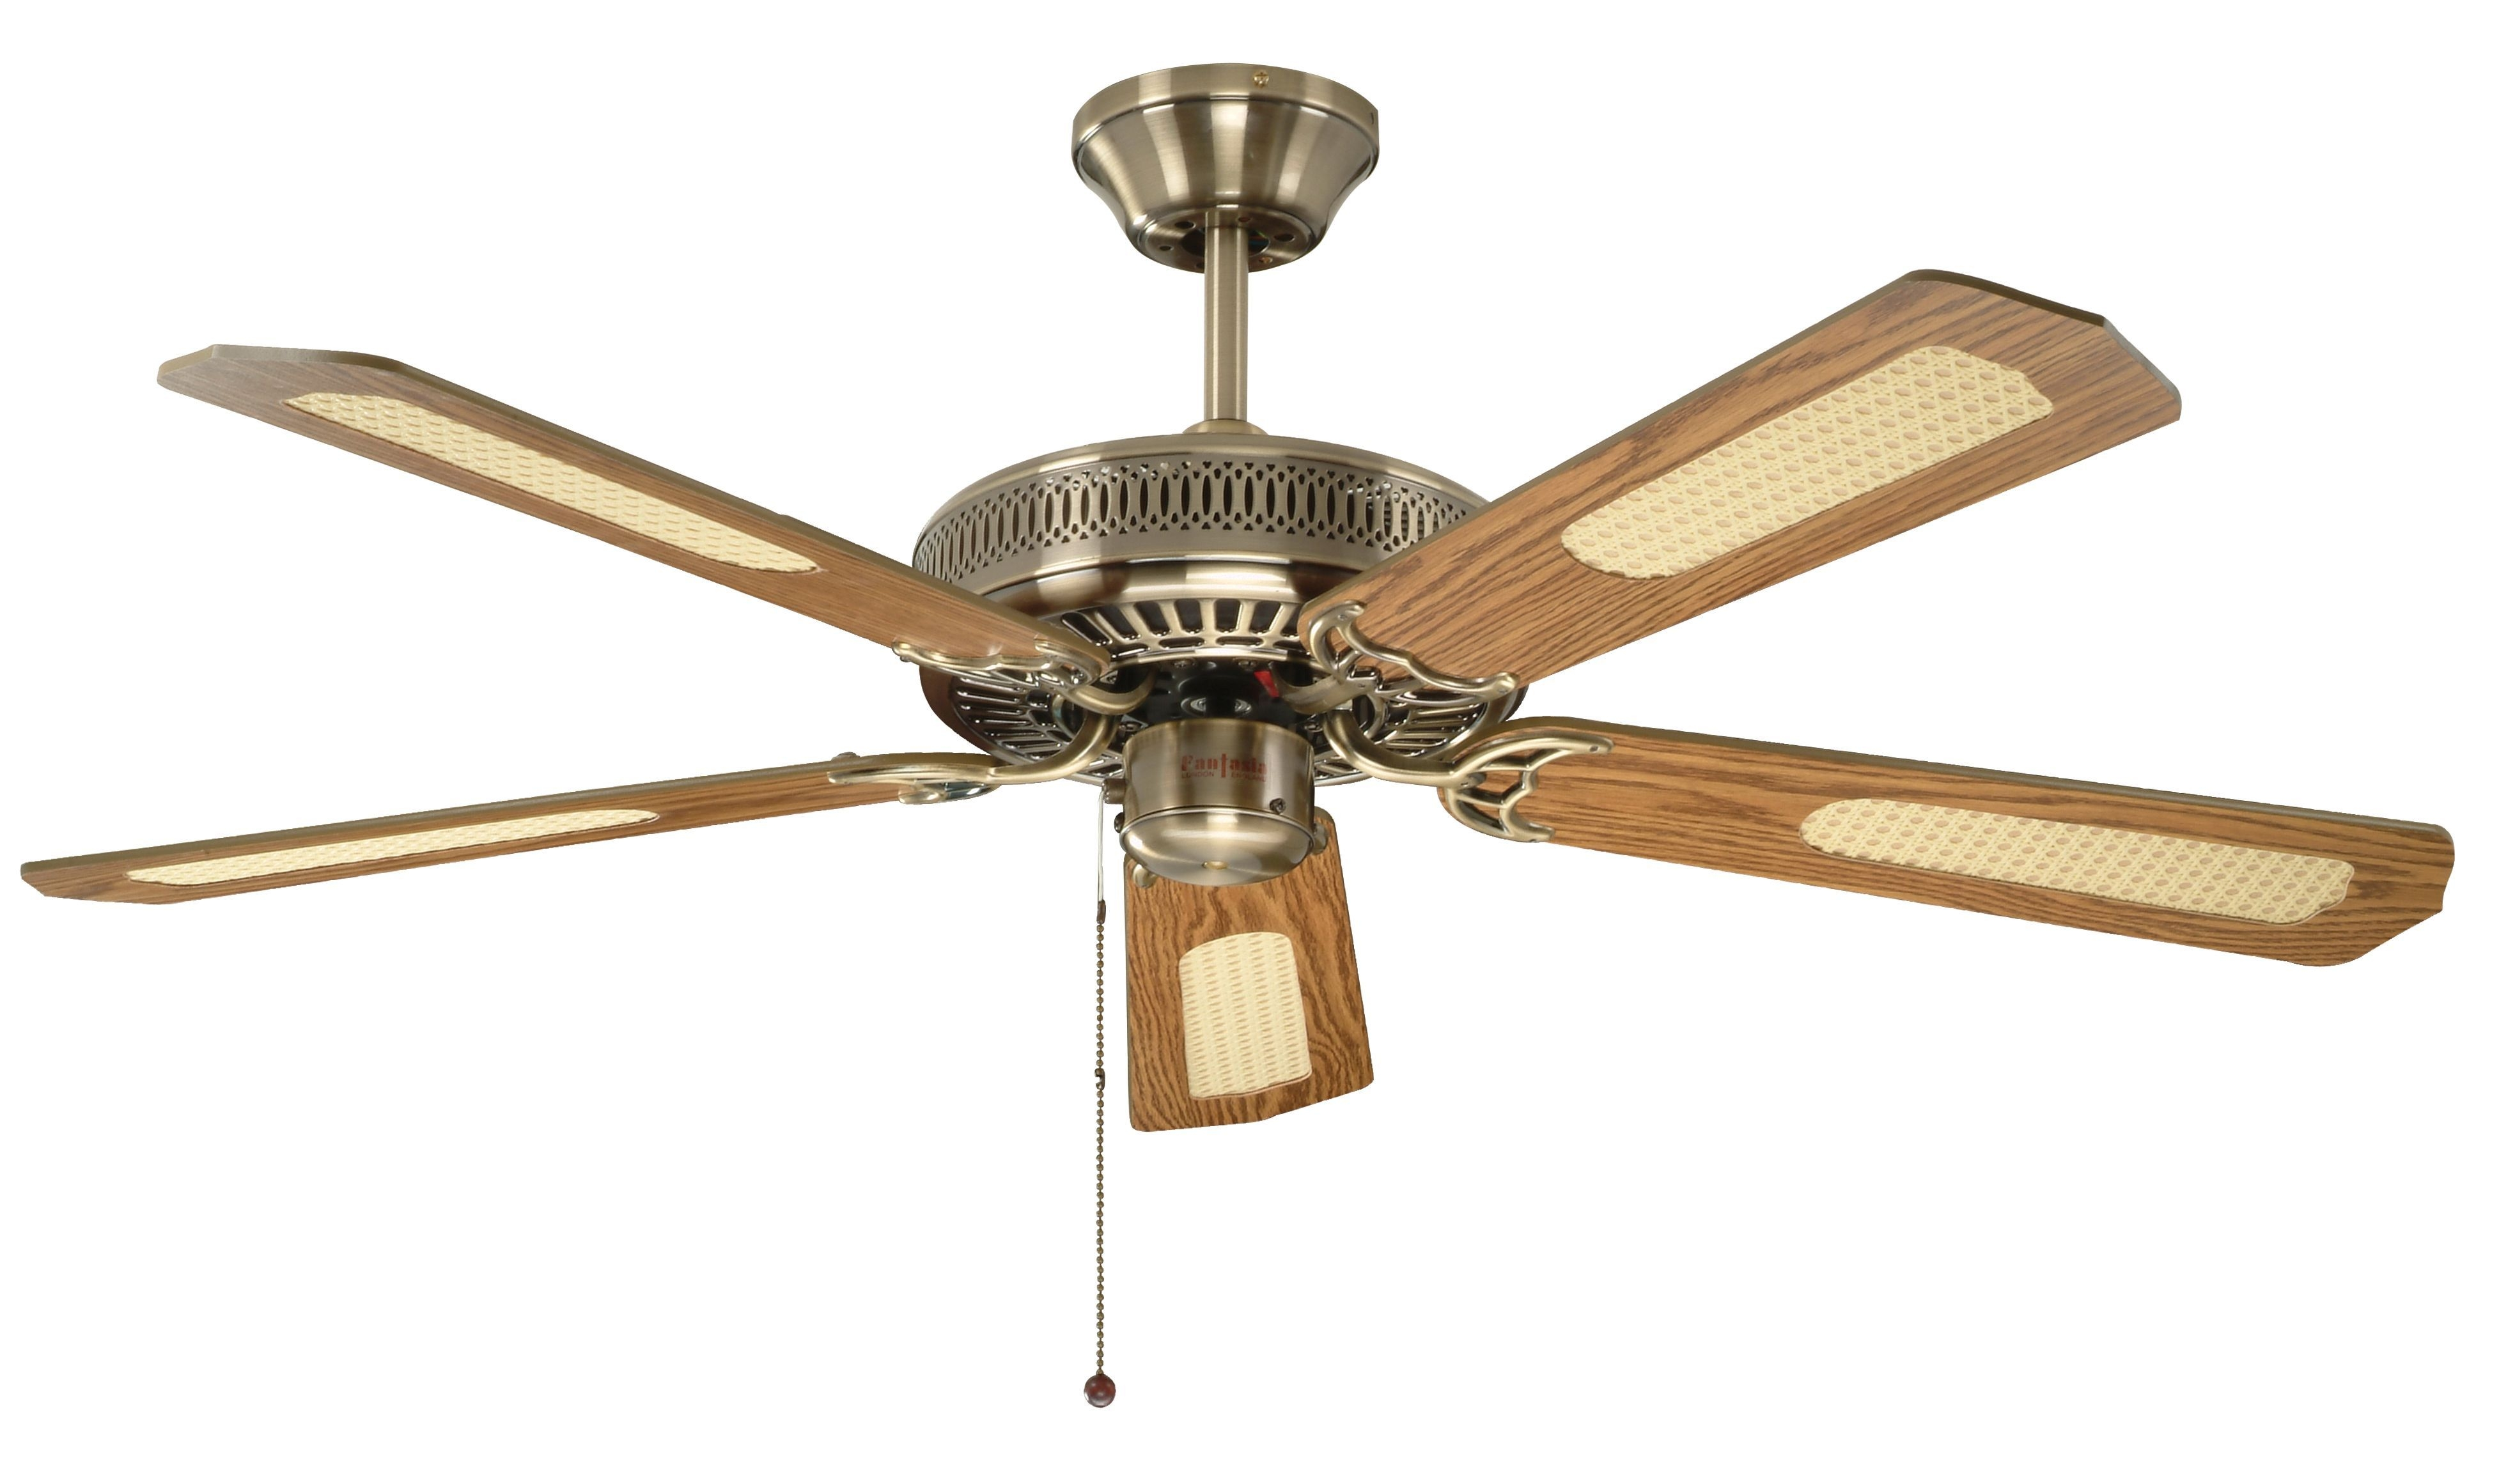 Fantasia Ceiling Fans Complete With Lights